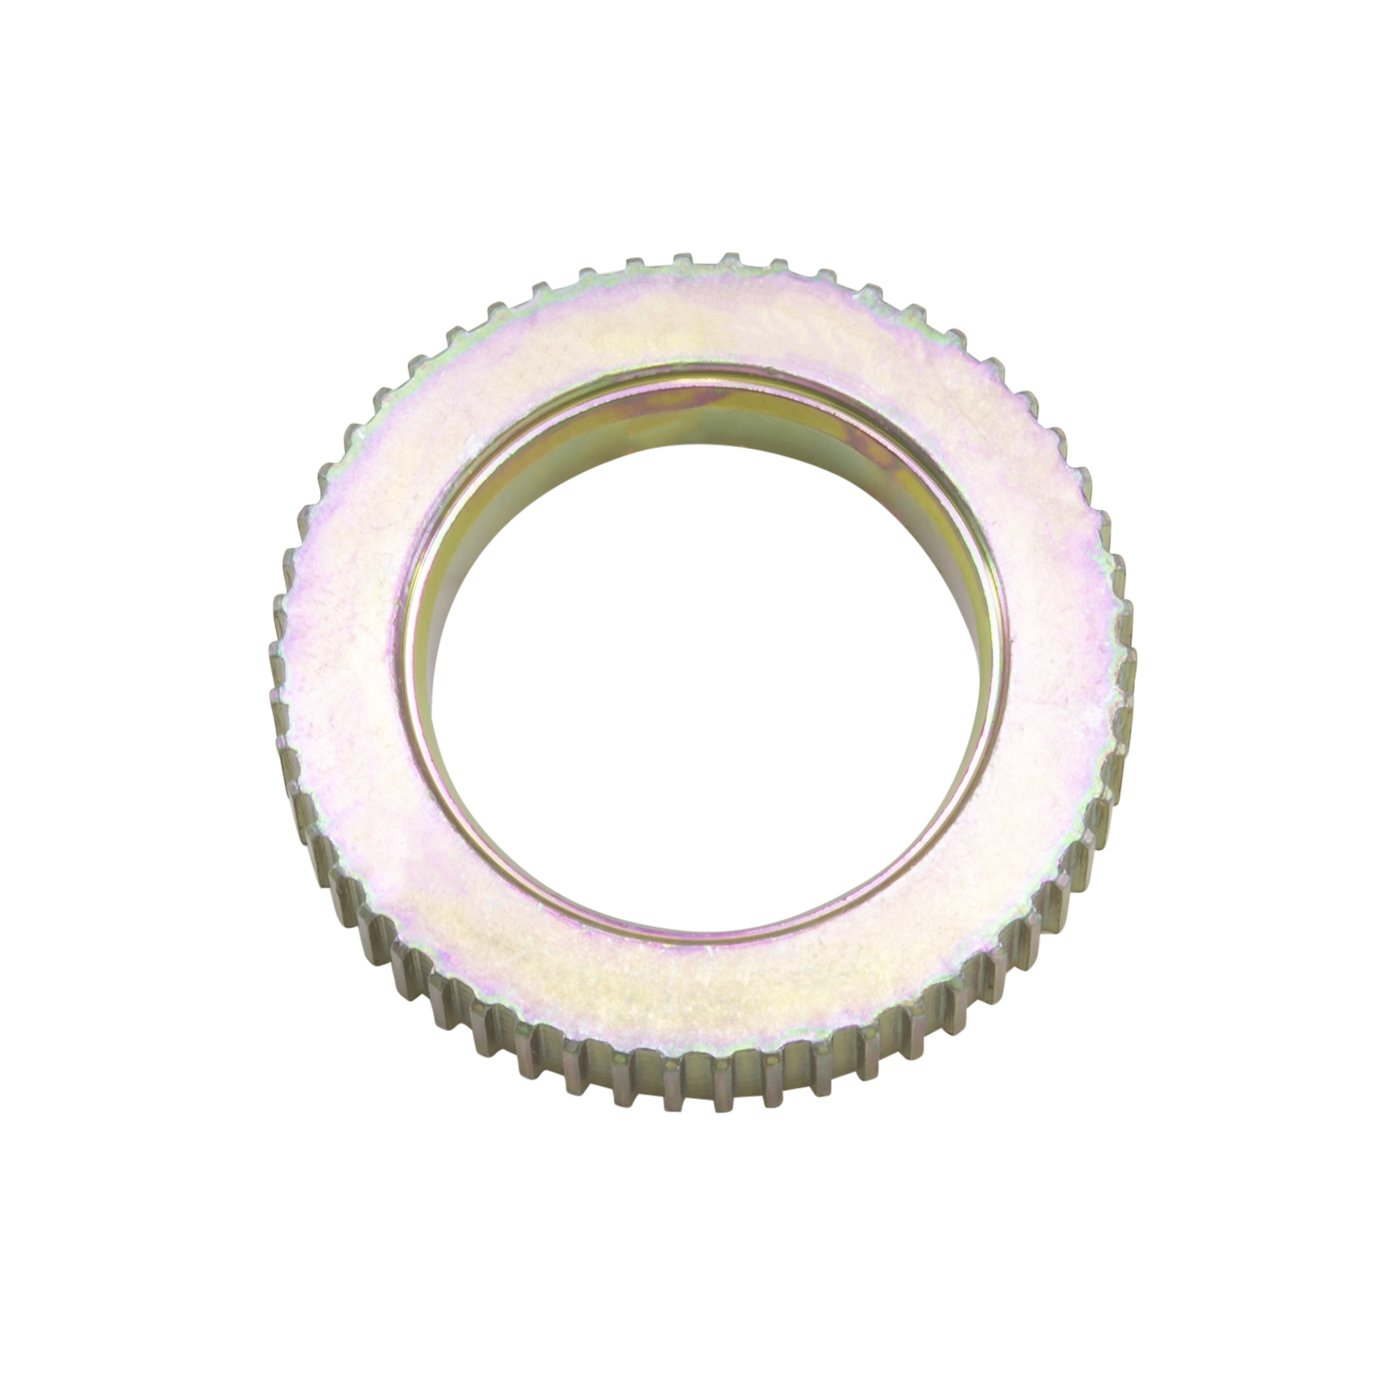 Yukon (YSPABS-012) 2.7'' 54-Tooth ABS Ring for AMC Model 35 Axle Differential